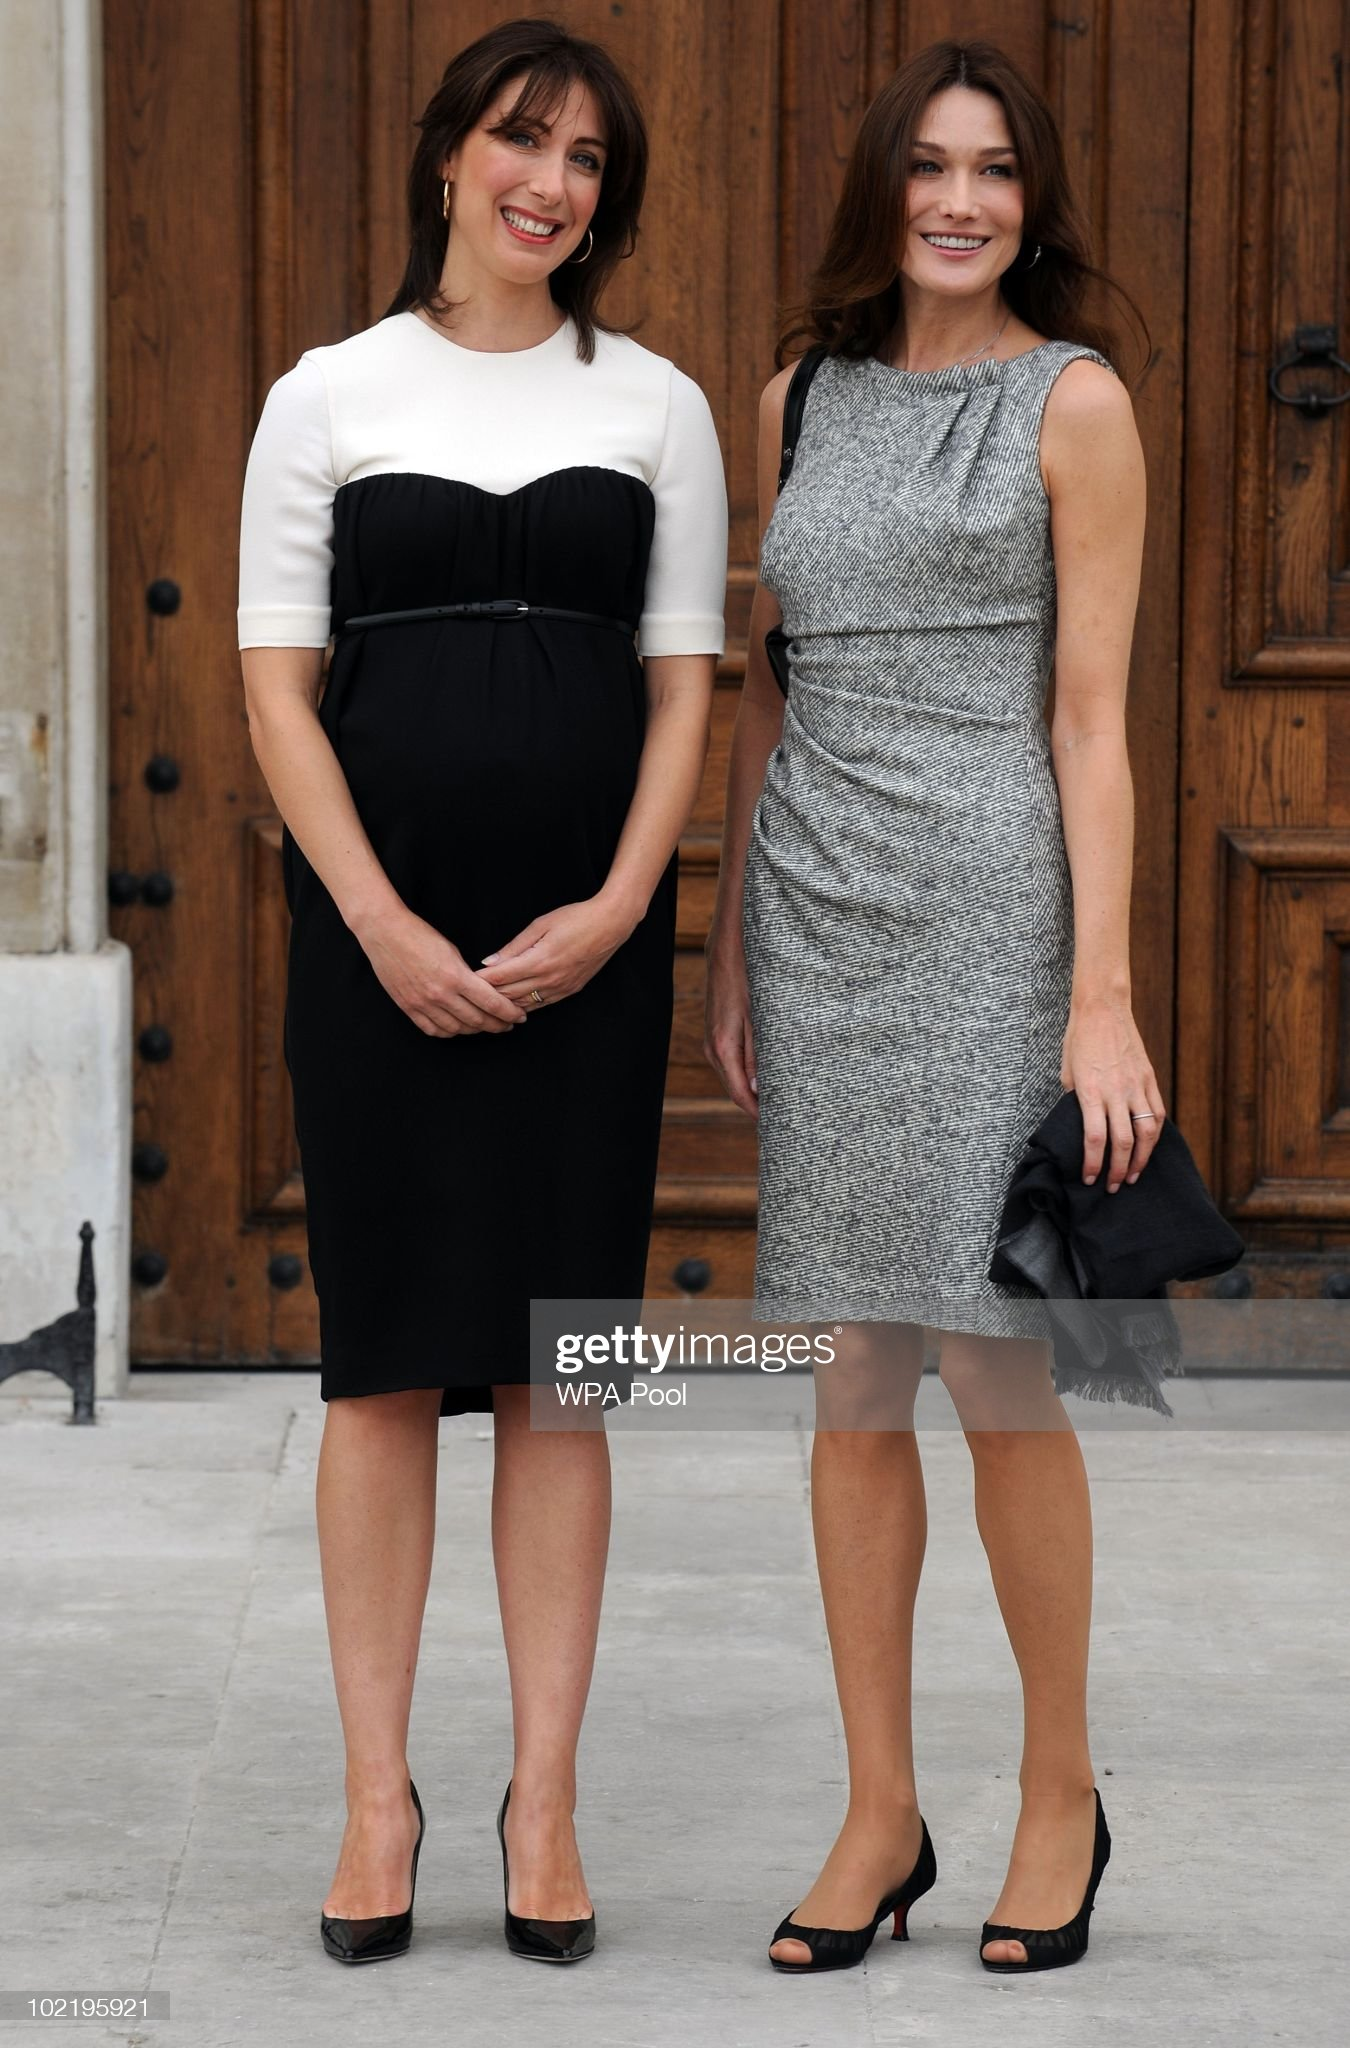 ¿Cuánto mide Carla Bruni? - Altura - Real height Samantha-cameron-wife-of-british-prime-minister-david-cameron-greets-picture-id102195921?s=2048x2048